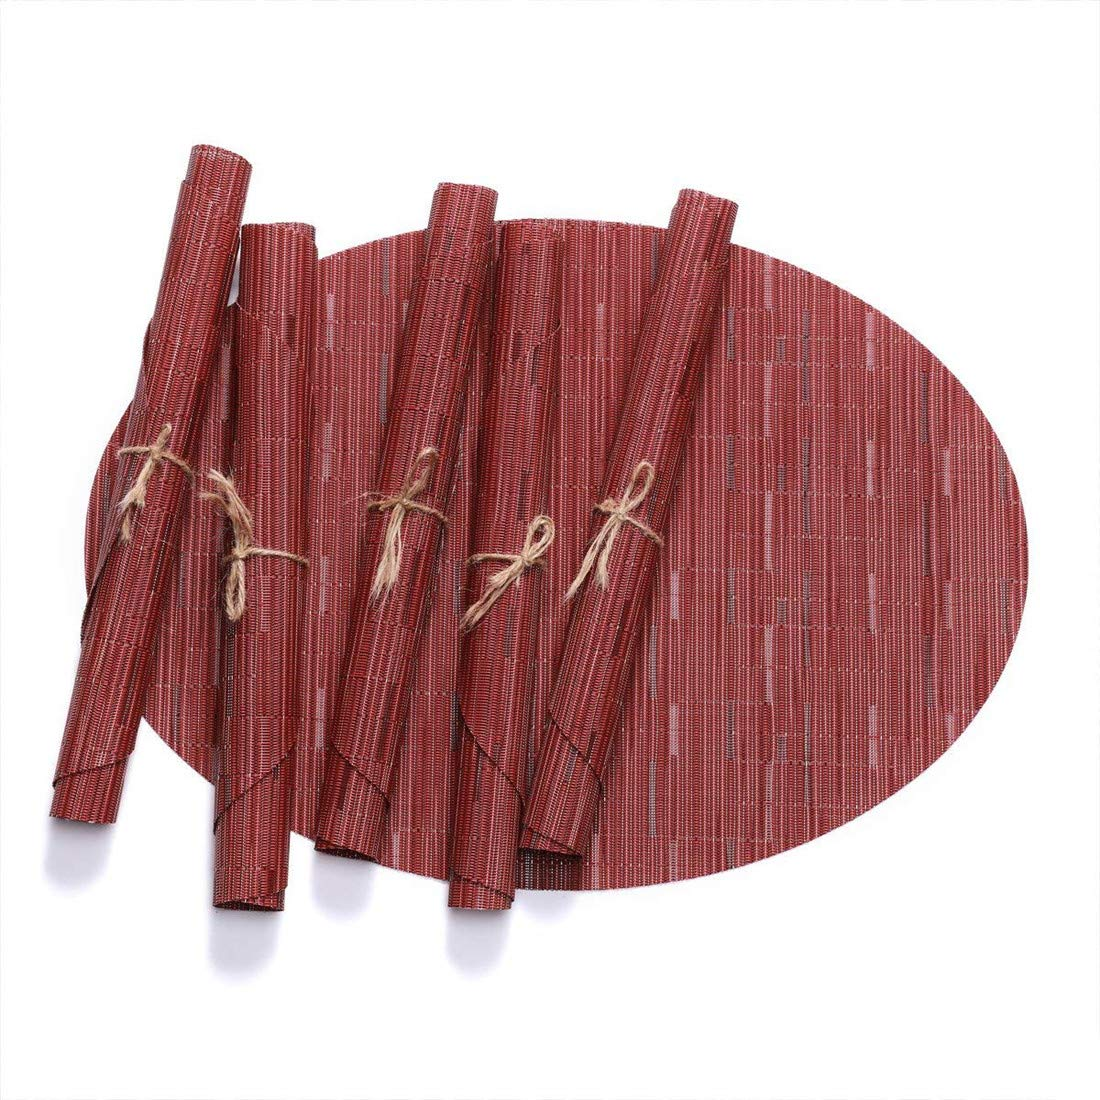 LANDZOON Woven Oval Table Placemats PVC Tablemats Non-Slip Washable Woven Vinyl Bamboo Heat-Resistant Tablemat Set(6 pcs) (Brown)